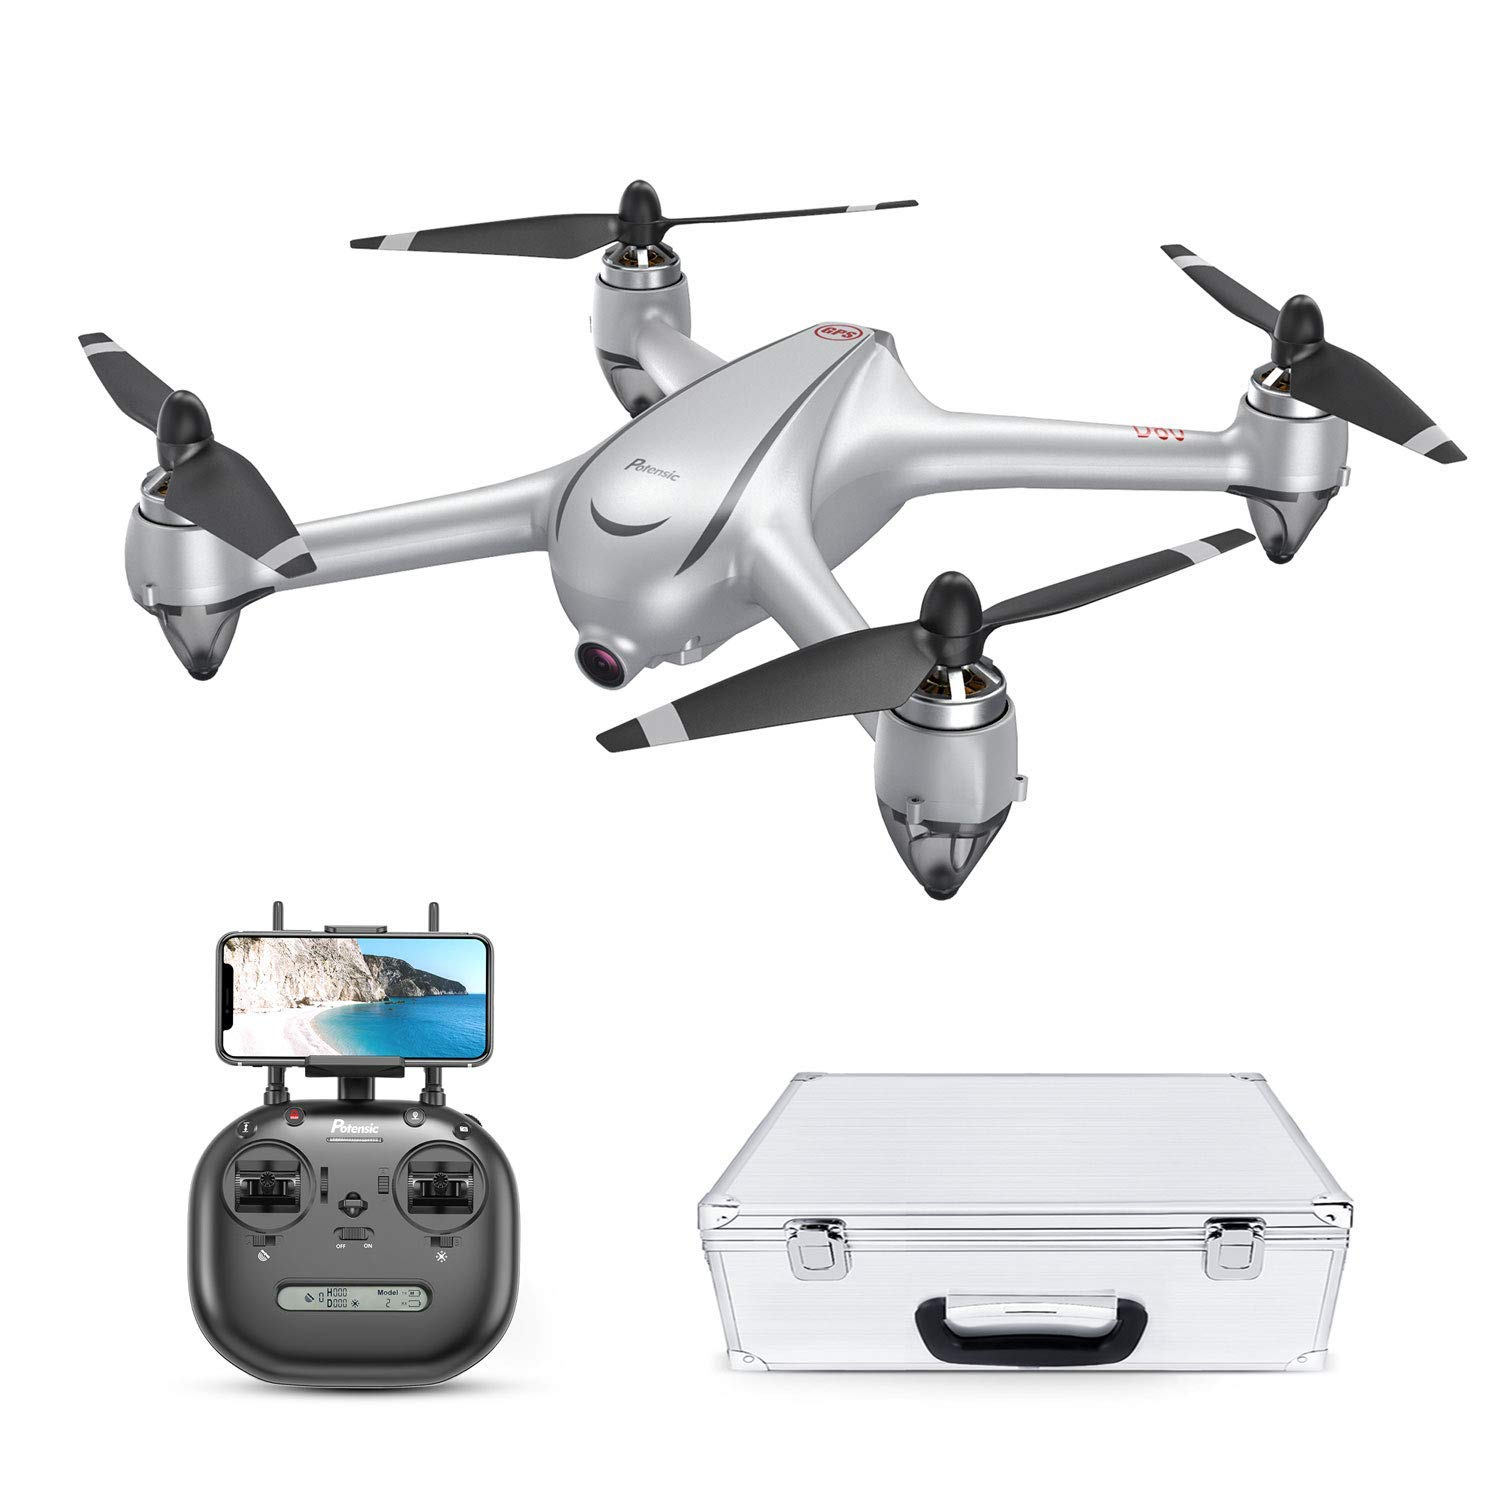 Drone GPS Con Motore Brushless Potensic